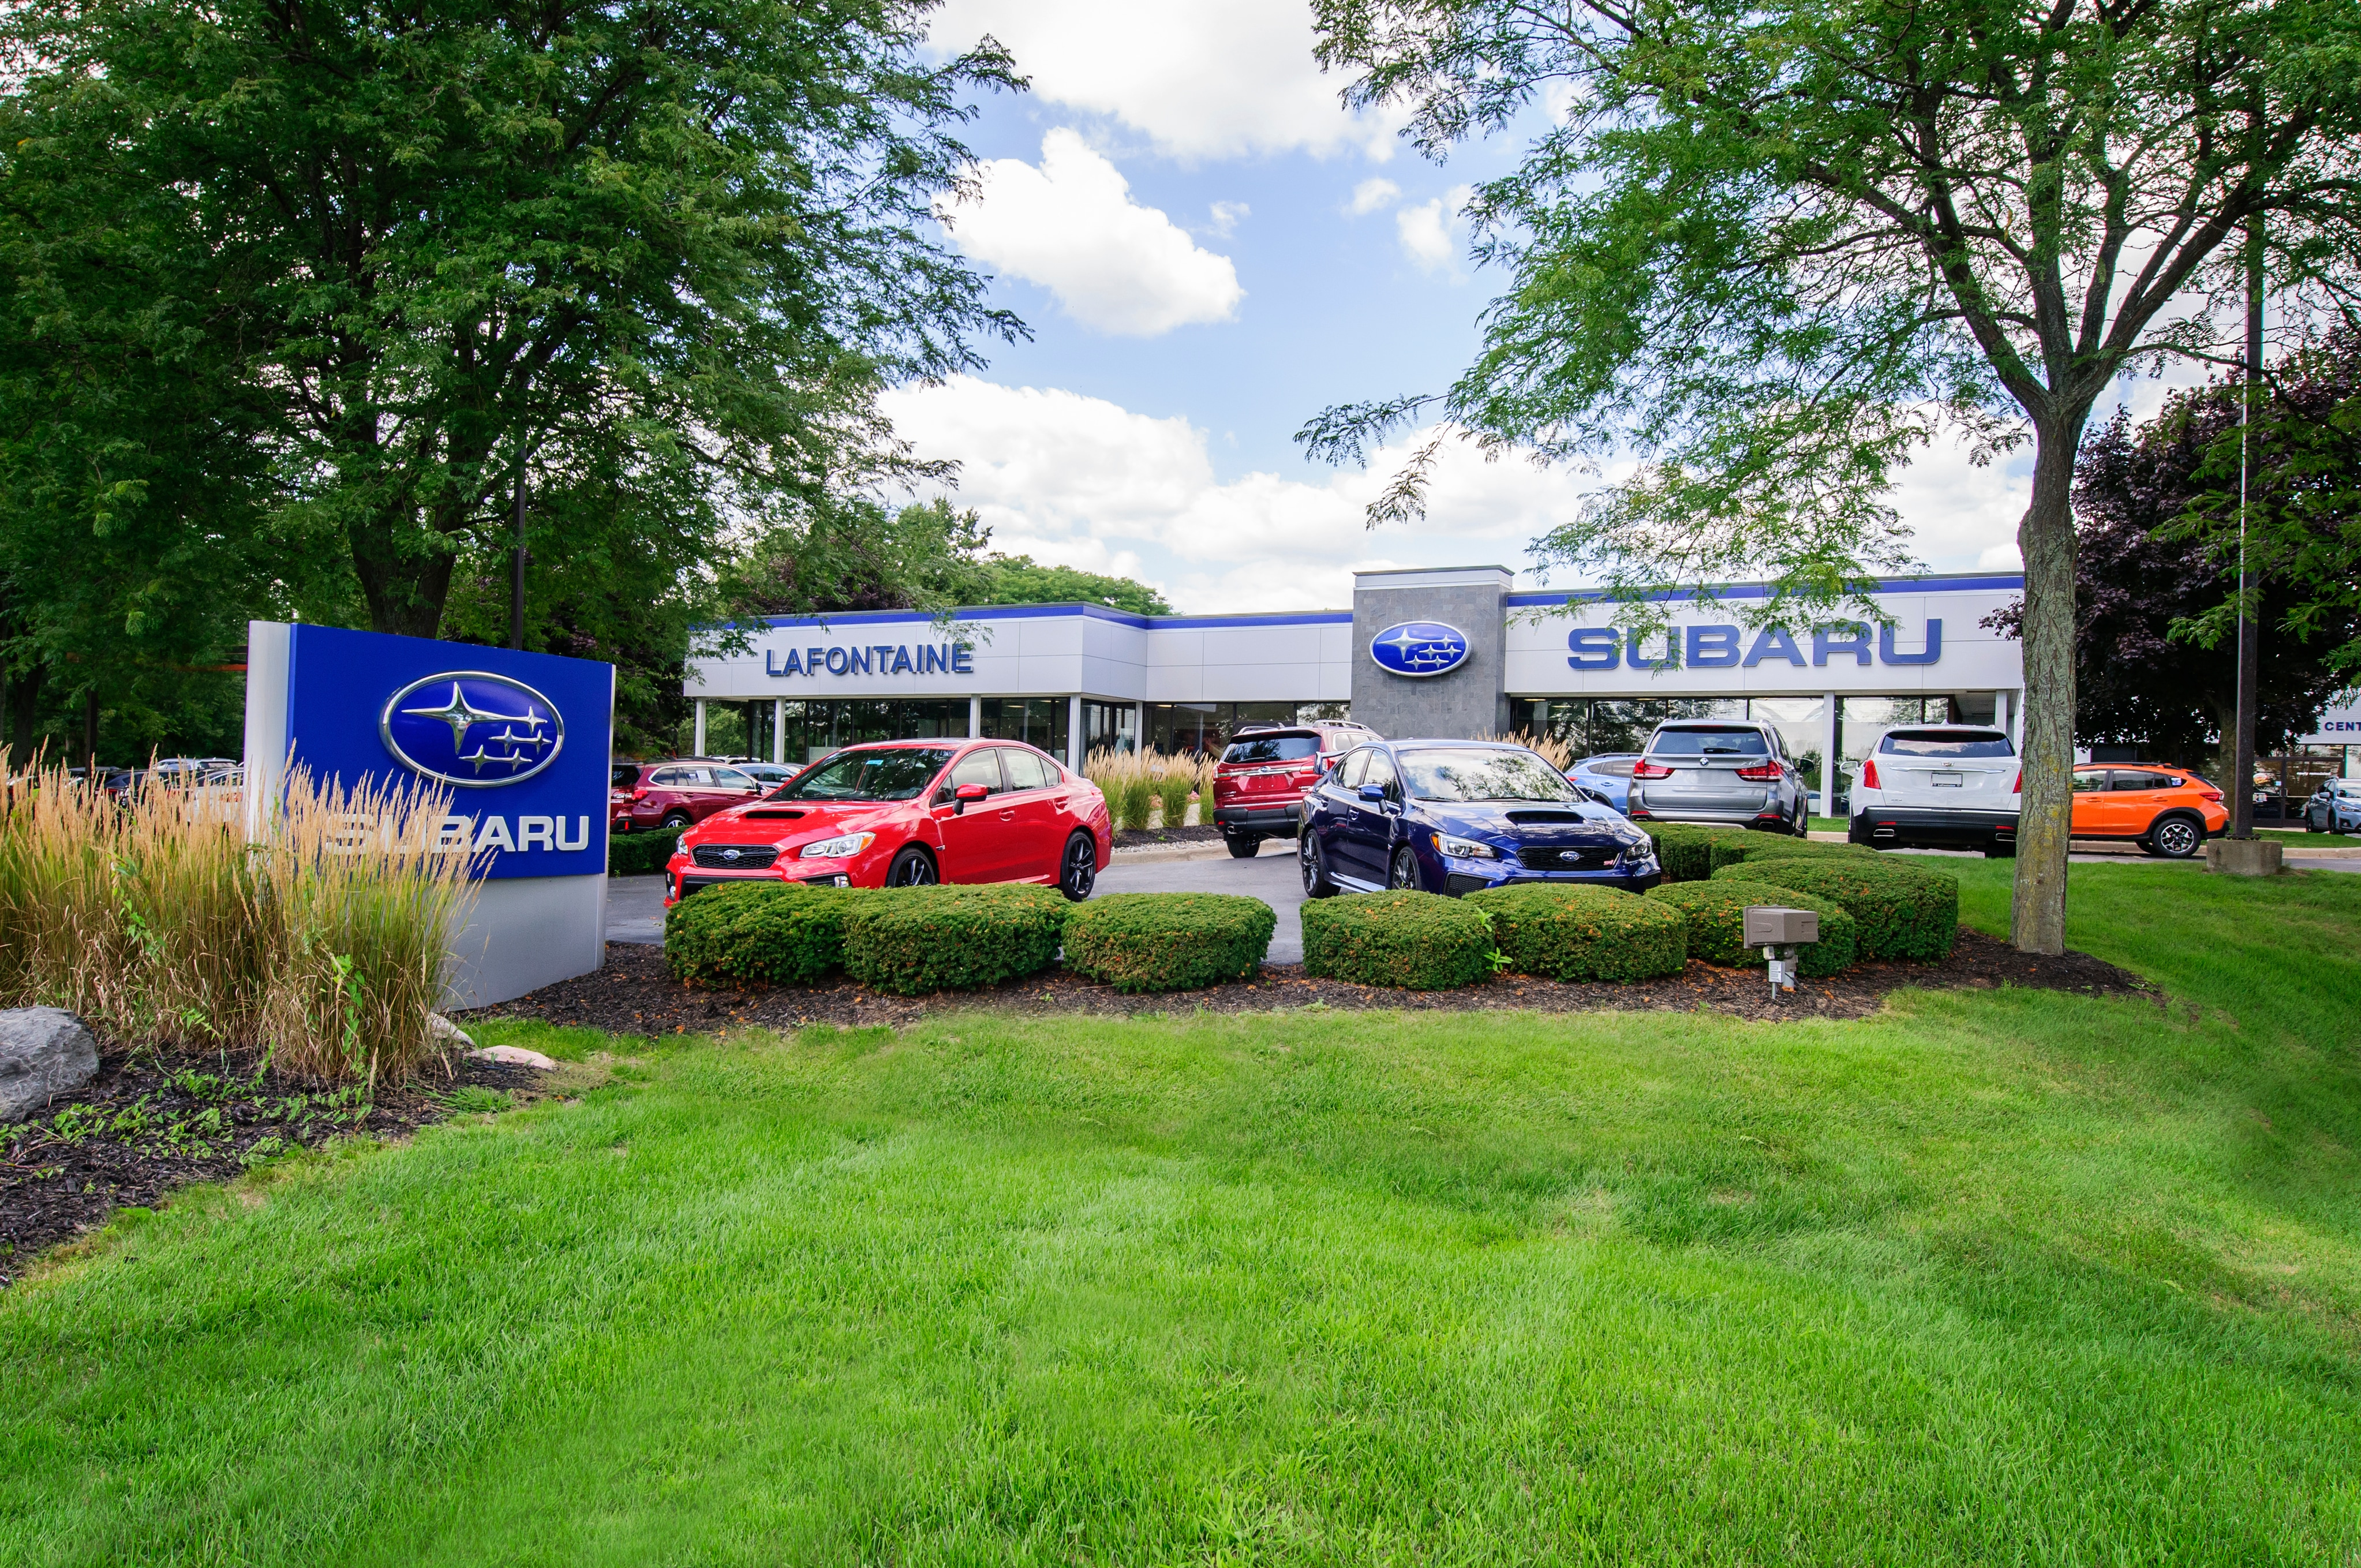 lafontaine subaru named 2018 automotive news best dealerships to work for lafontaine subaru. Black Bedroom Furniture Sets. Home Design Ideas